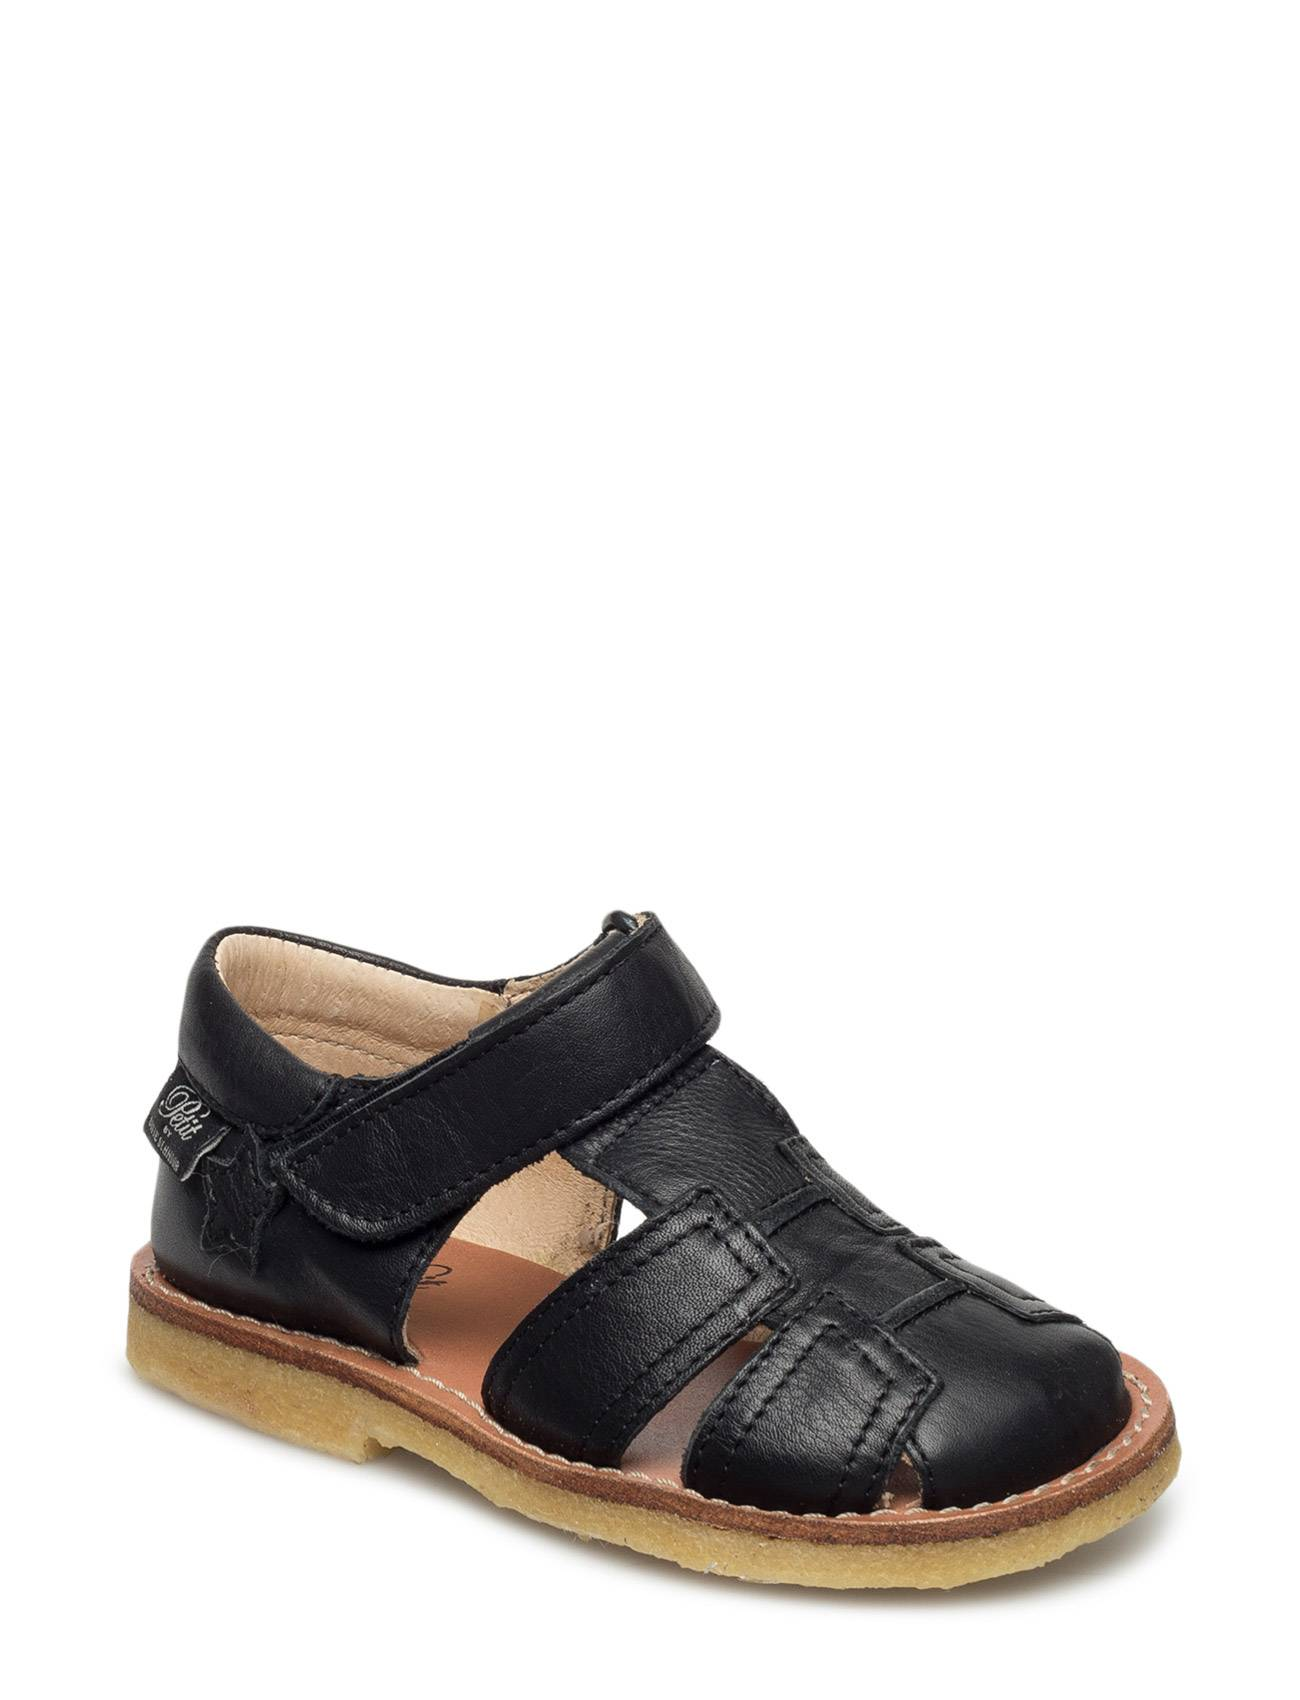 Petit by Sofie Schnoor Leather Sandal